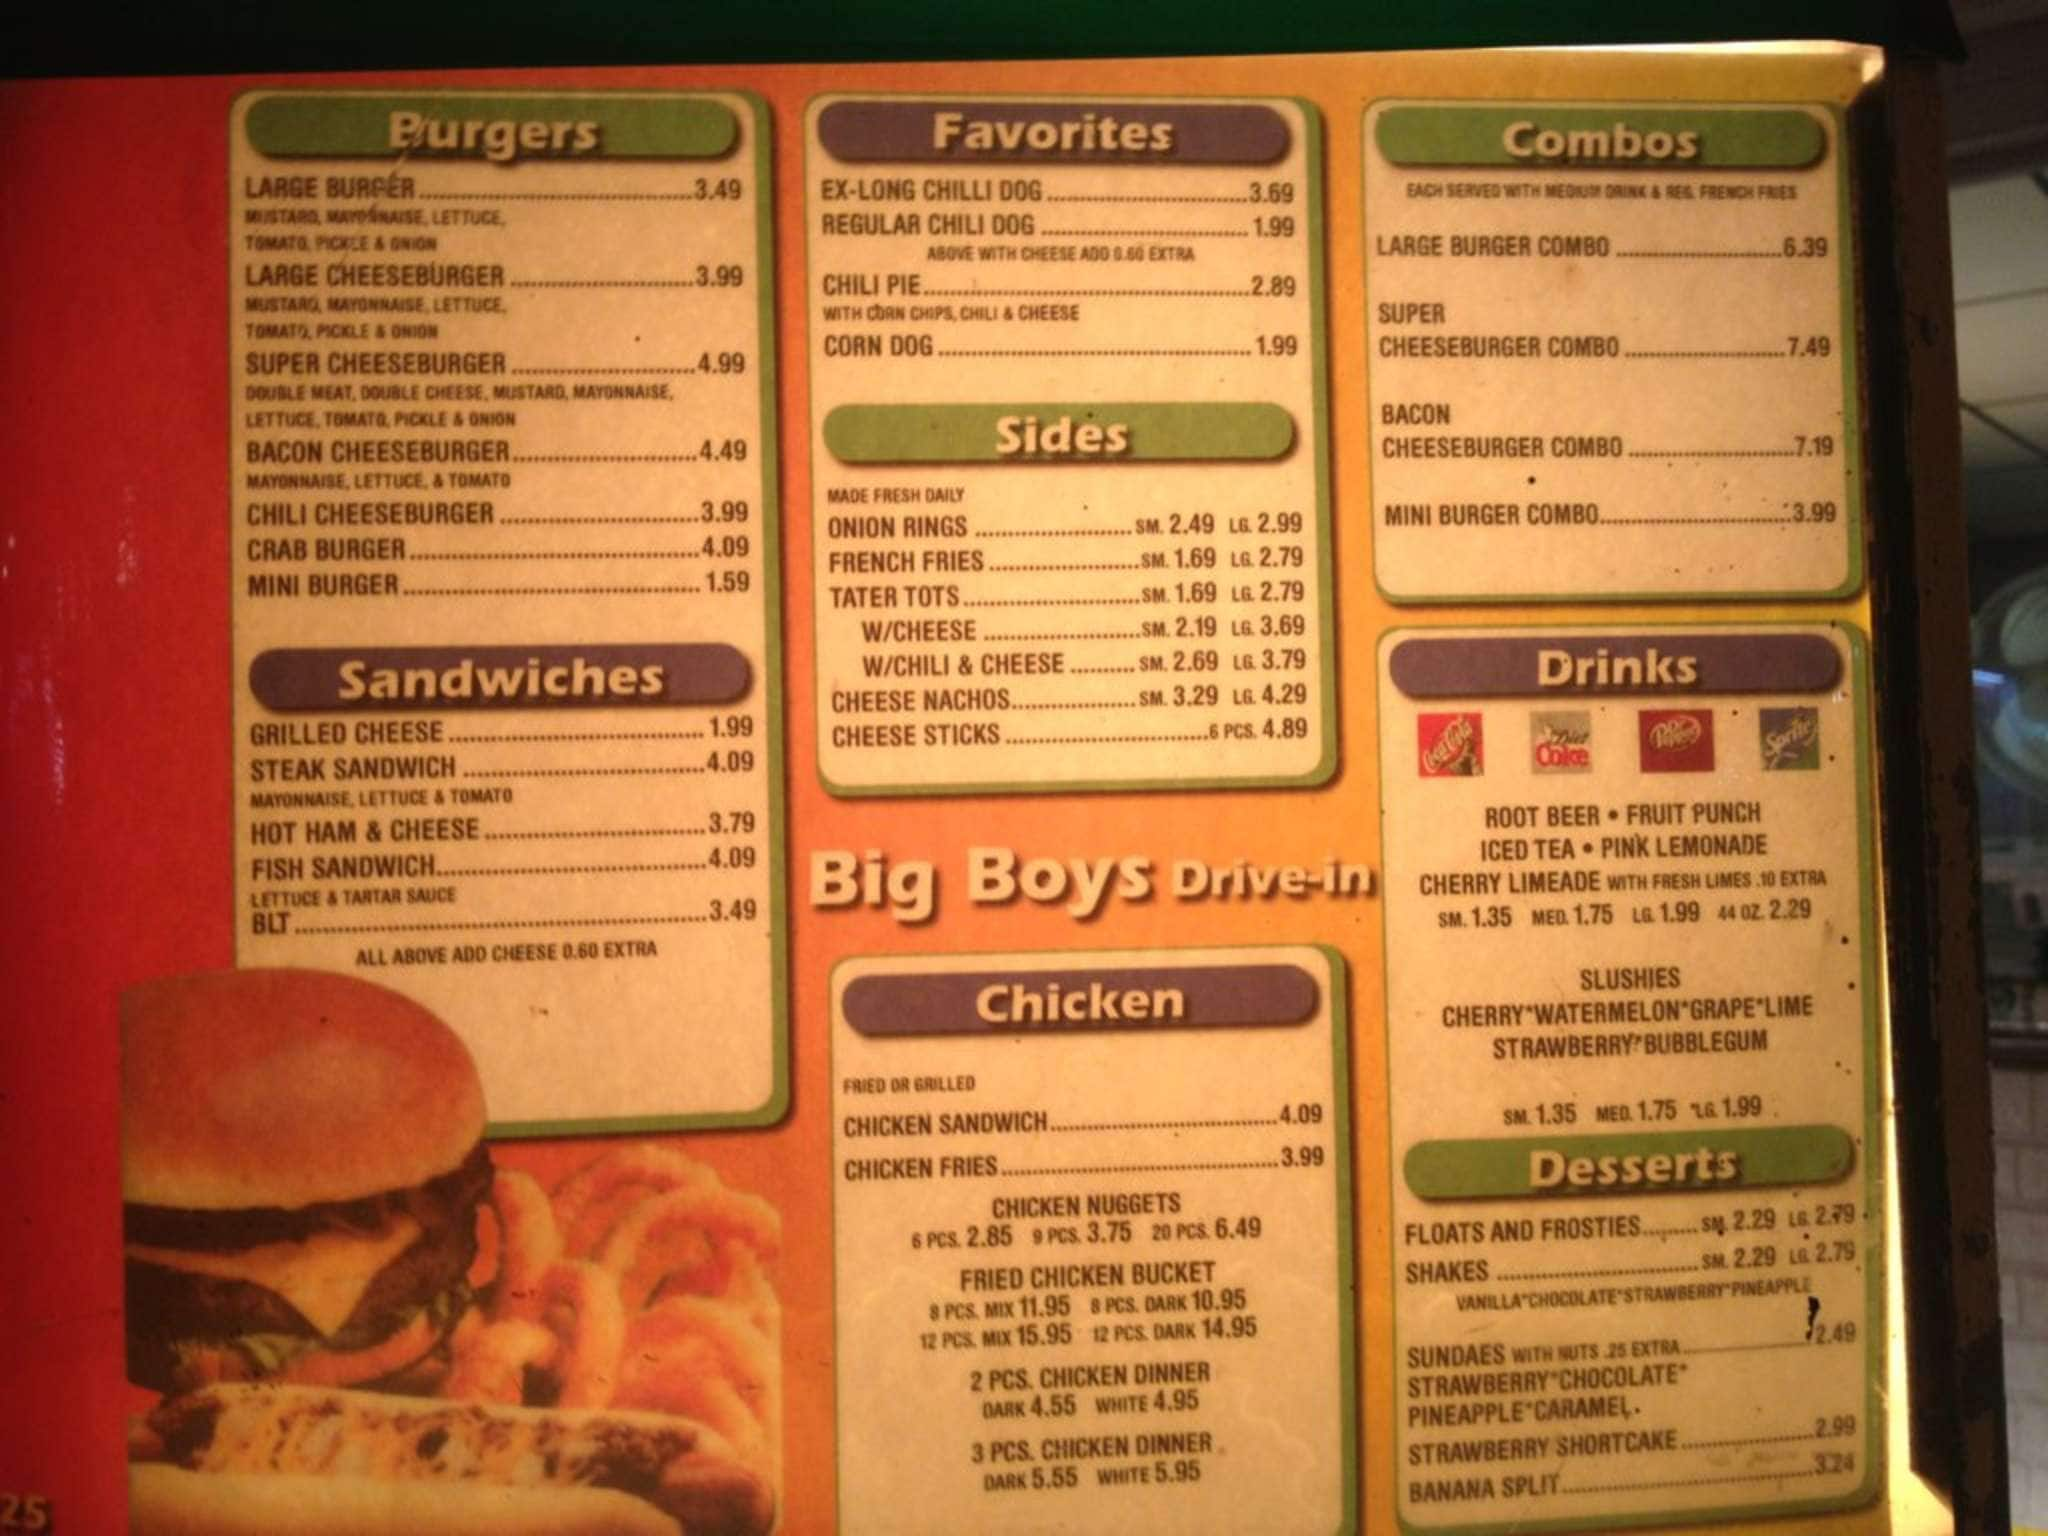 Big Boy's Drive-in Menu